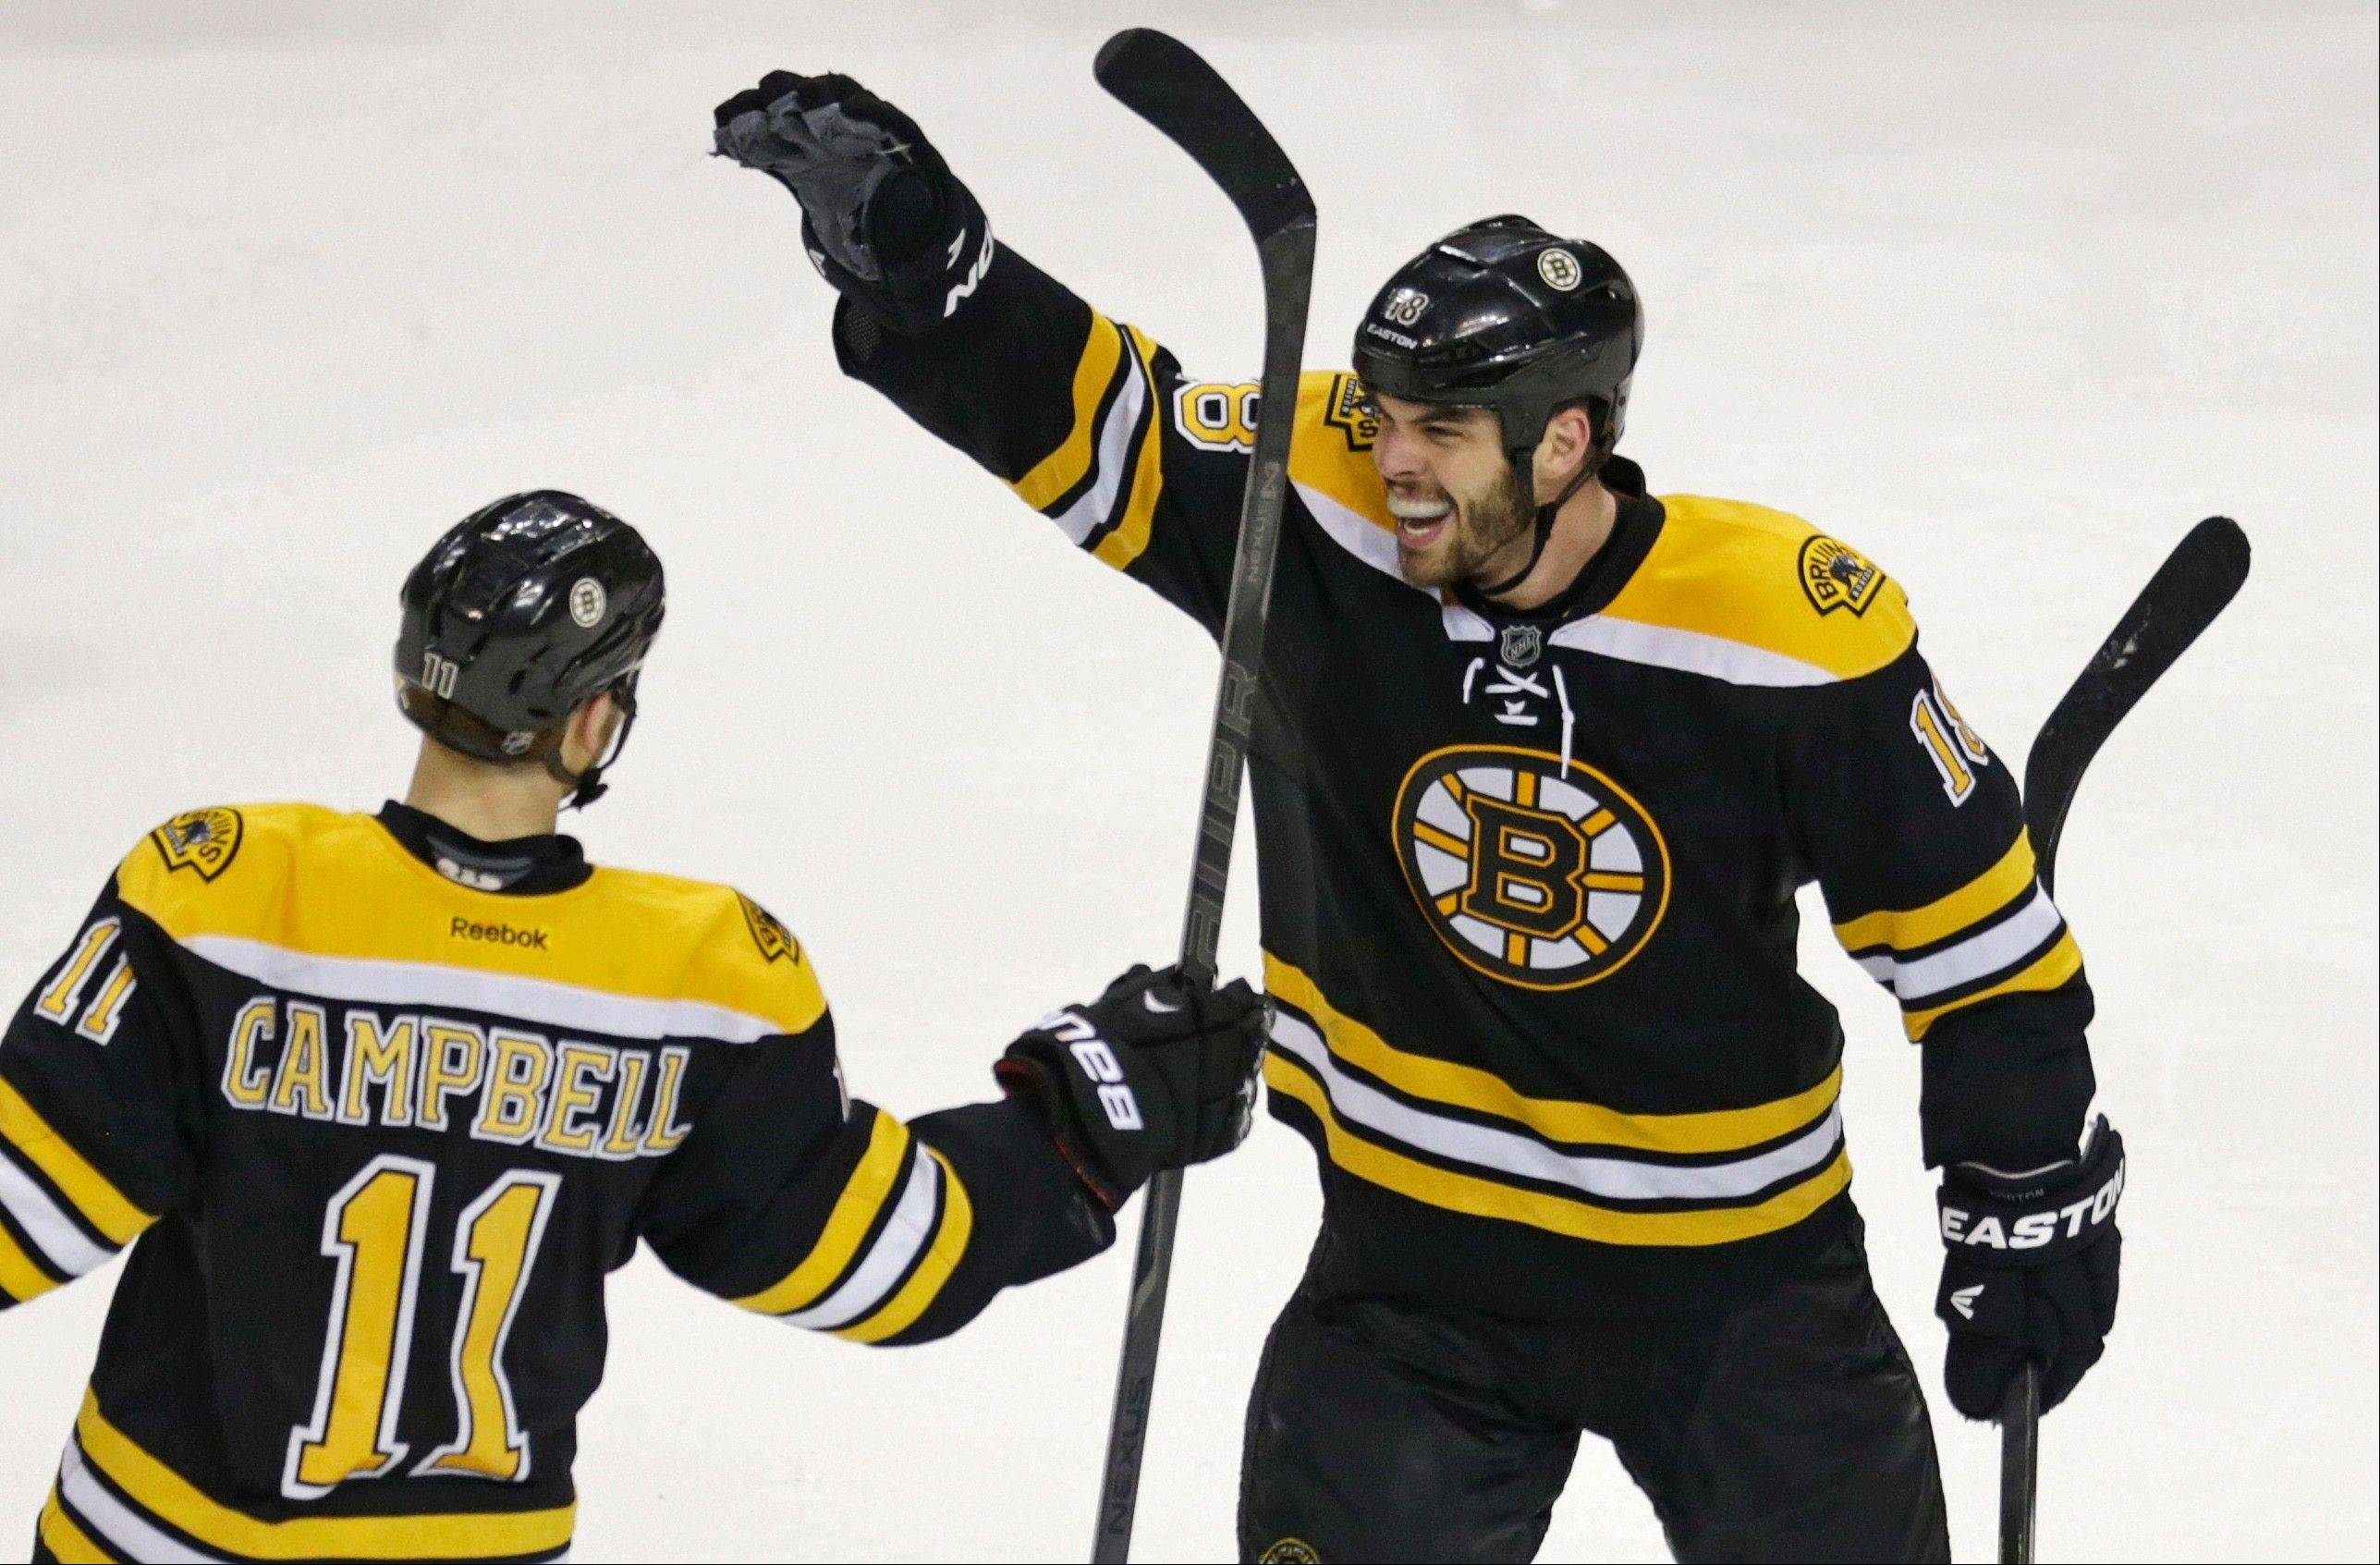 Boston Bruins center Gregory Campbell (11) is congratulated by teammate Nathan Horton, right, after his goal against the New York Rangers during the third period in Game 5 of the Eastern Conference semifinals in the NHL hockey Stanley Cup playoffs in Boston, Saturday, May 25, 2013. The Bruins won 3-1 and advance in the playoffs.